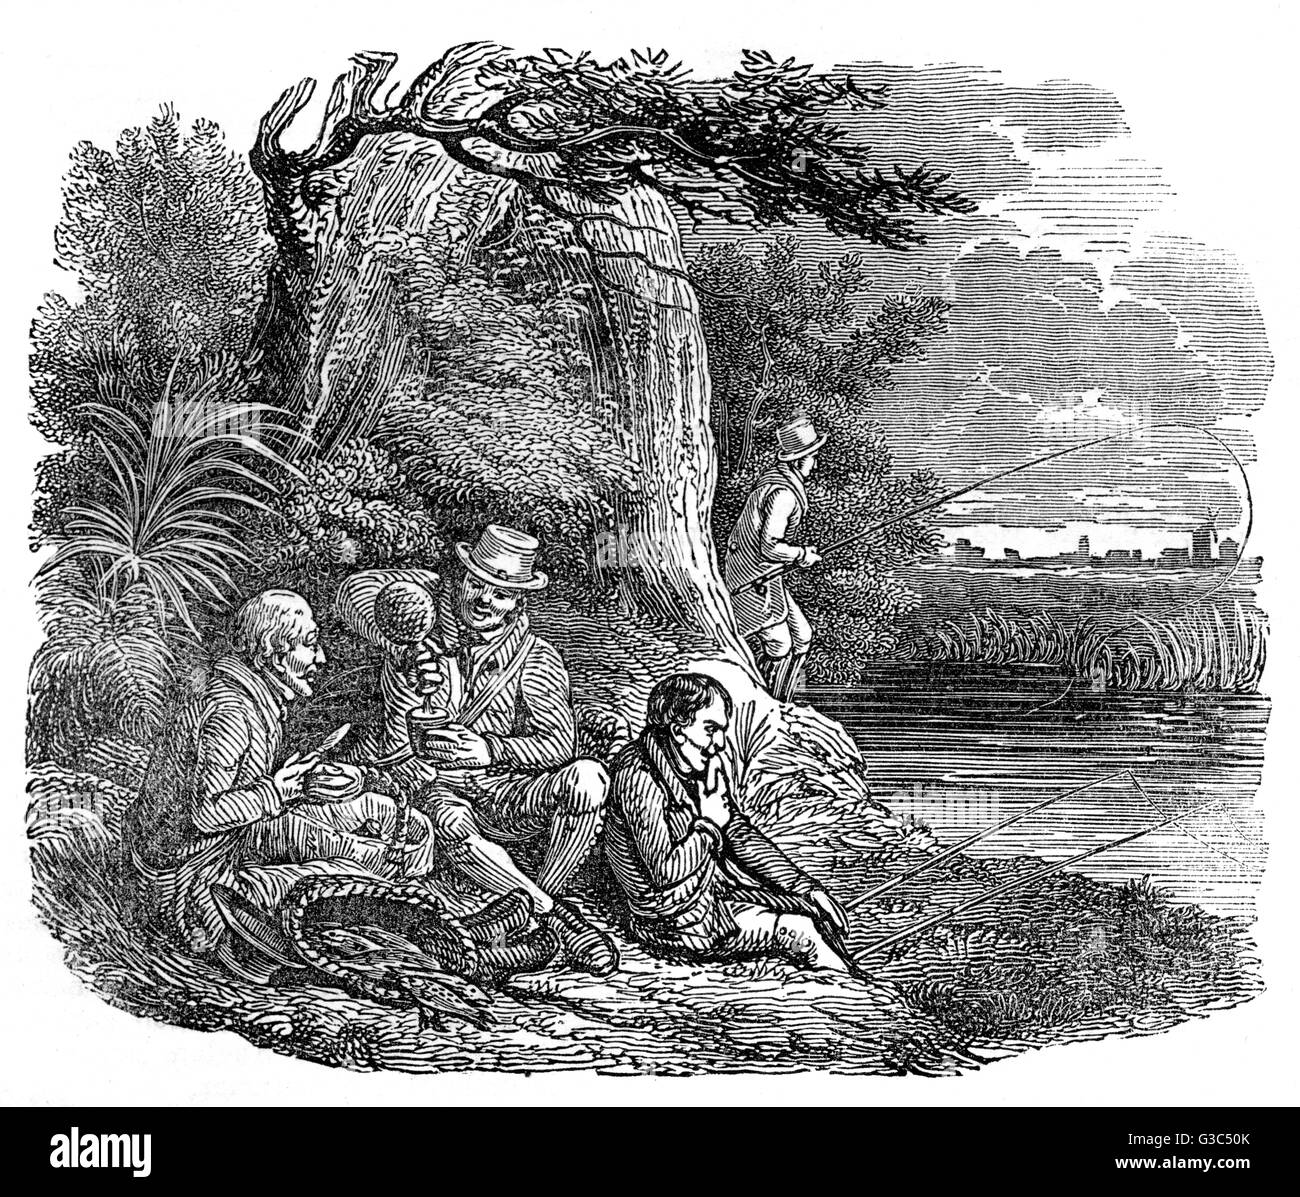 Illustration, The Jolly Anglers, showing a happy group of men fishing and relaxing on a riverbank.      Date: 1832 - Stock Image